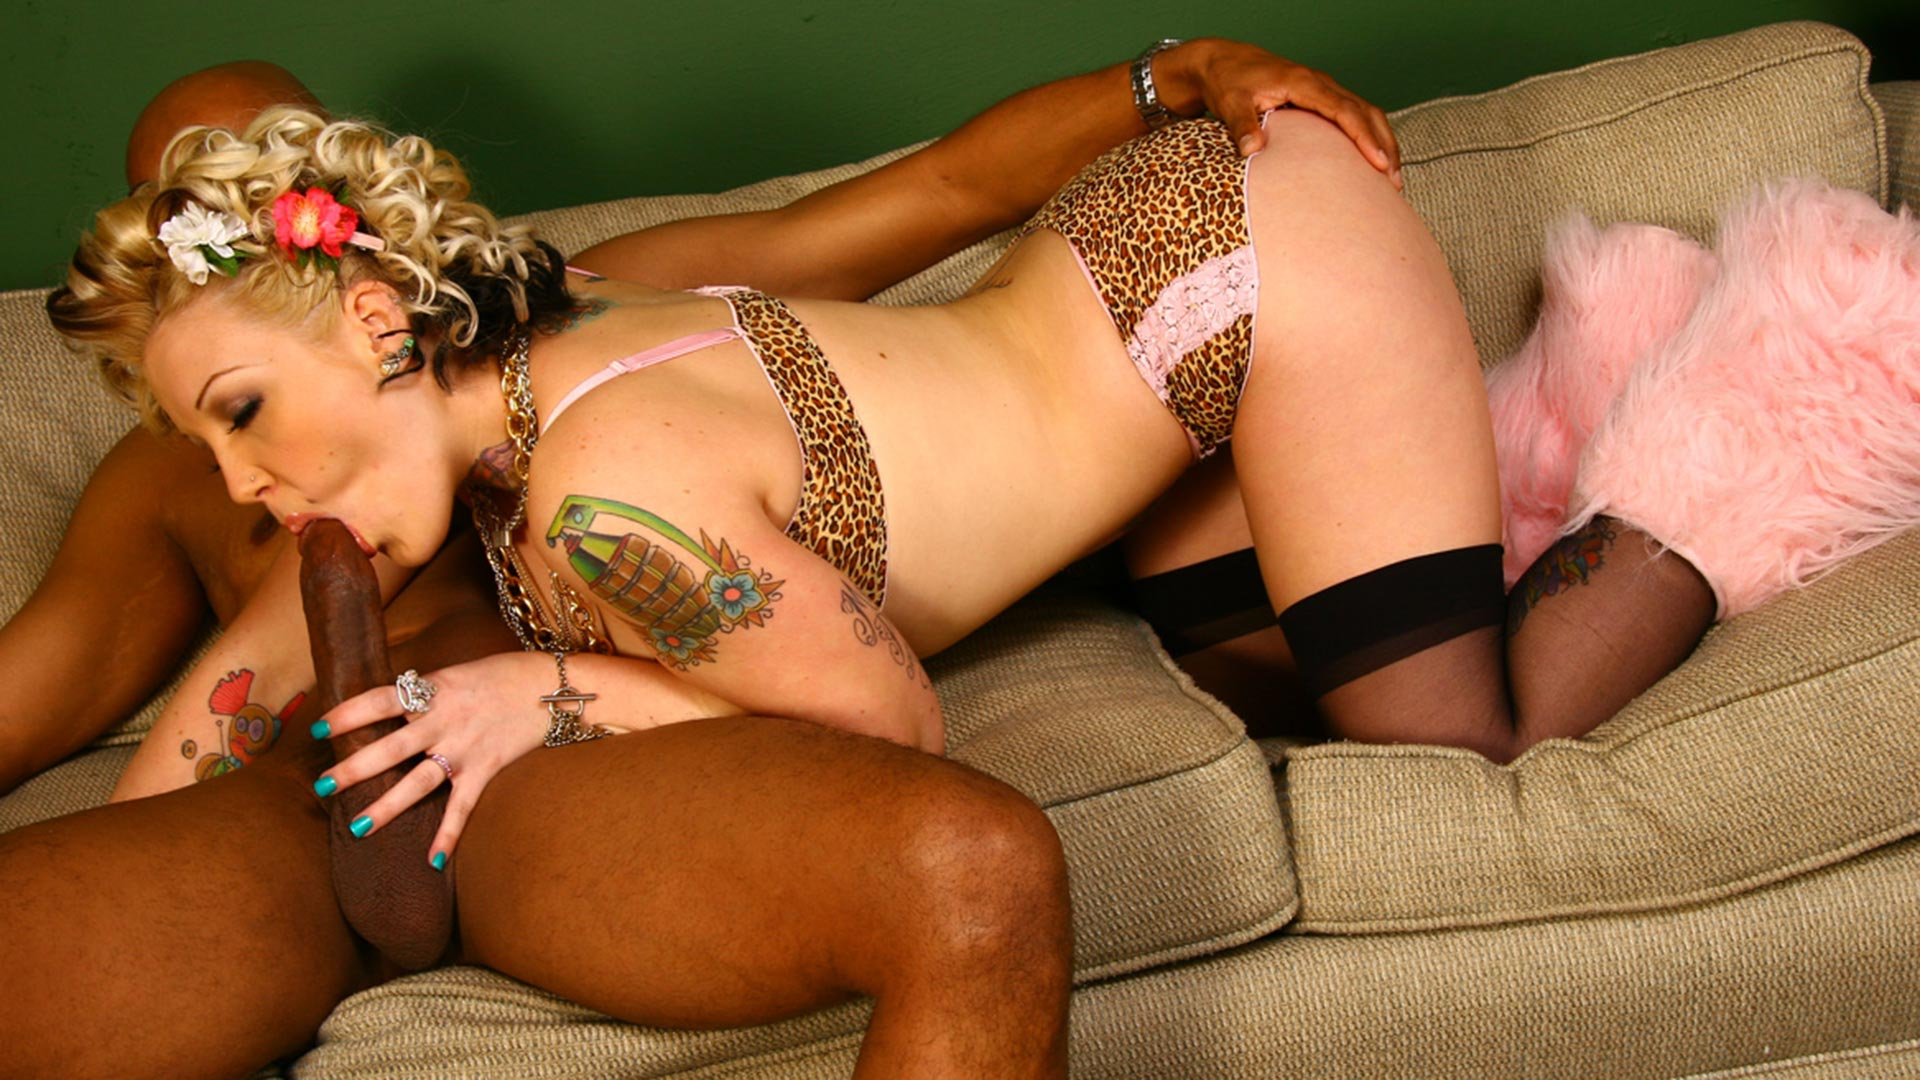 CandyMonroe Elmer and Broc Interracial Porn